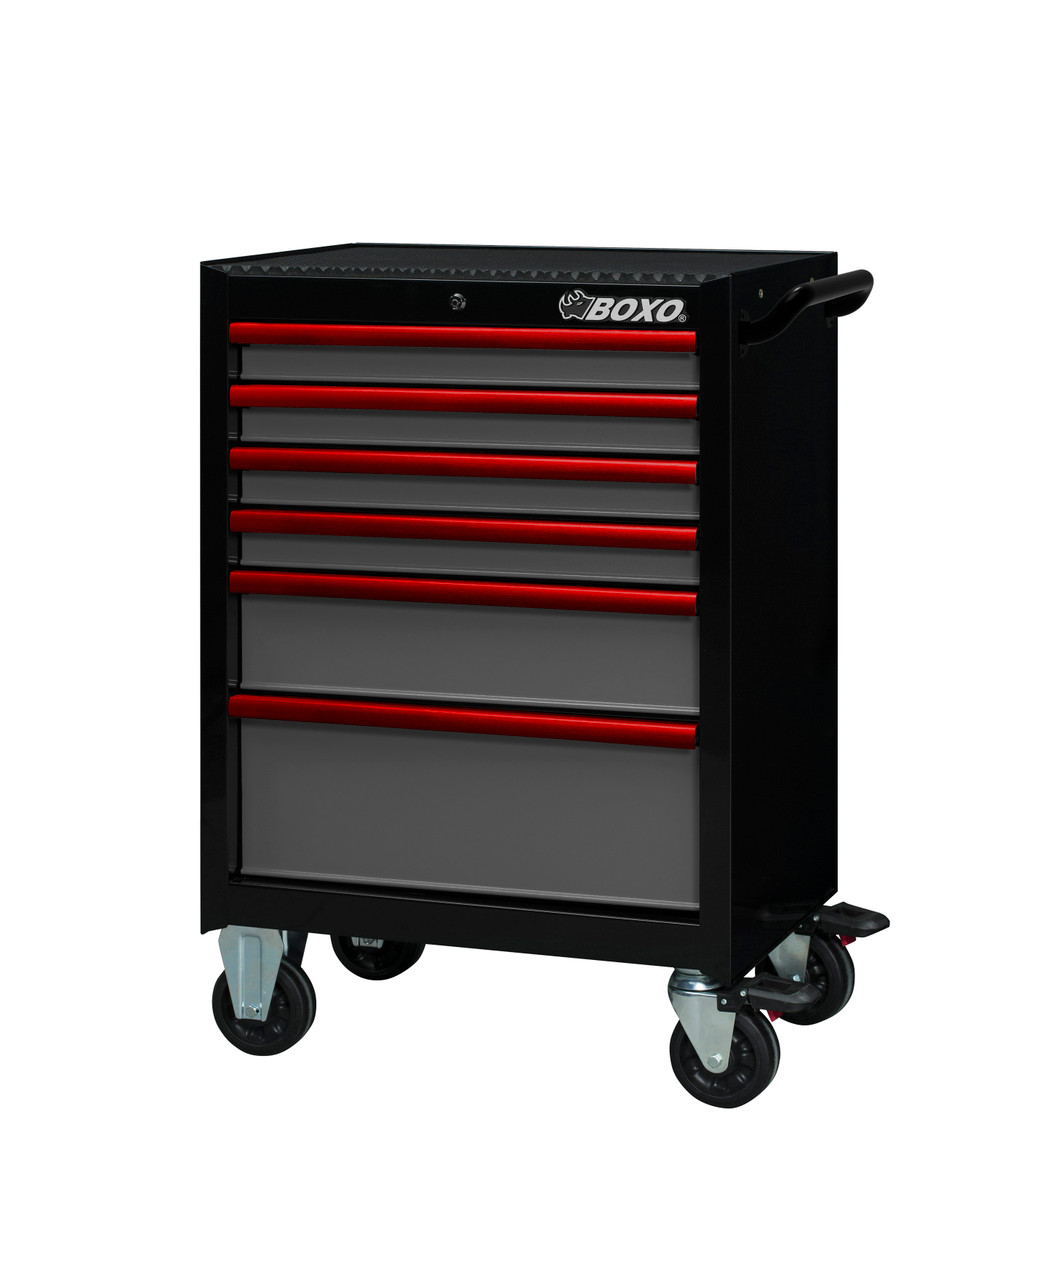 """BOXO USA 26TB-GY 26"""" Roller Cabinet and Top Chest - Gloss Black with Semi Gloss Gray Drawers with  Red Anodized Drawer Pulls"""